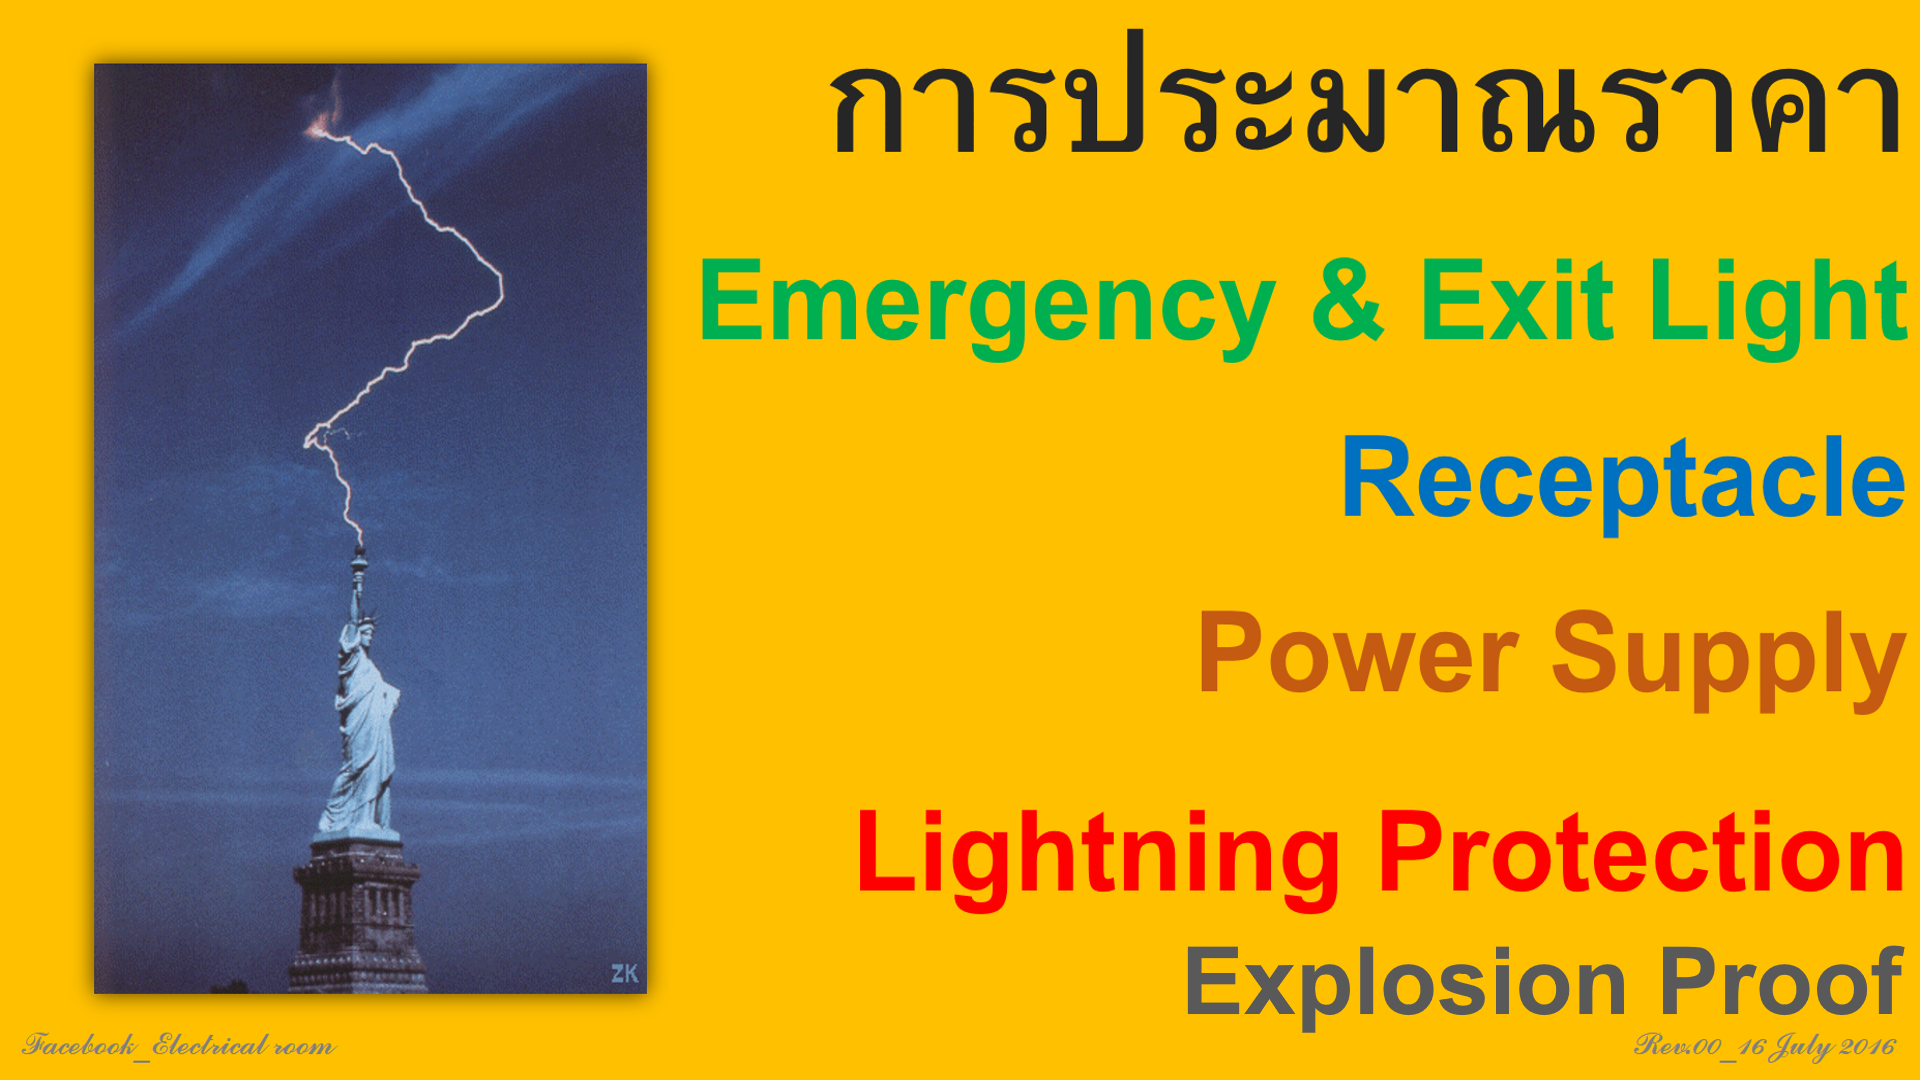 7. Emer,Exit,Rec,Power,Lightning-